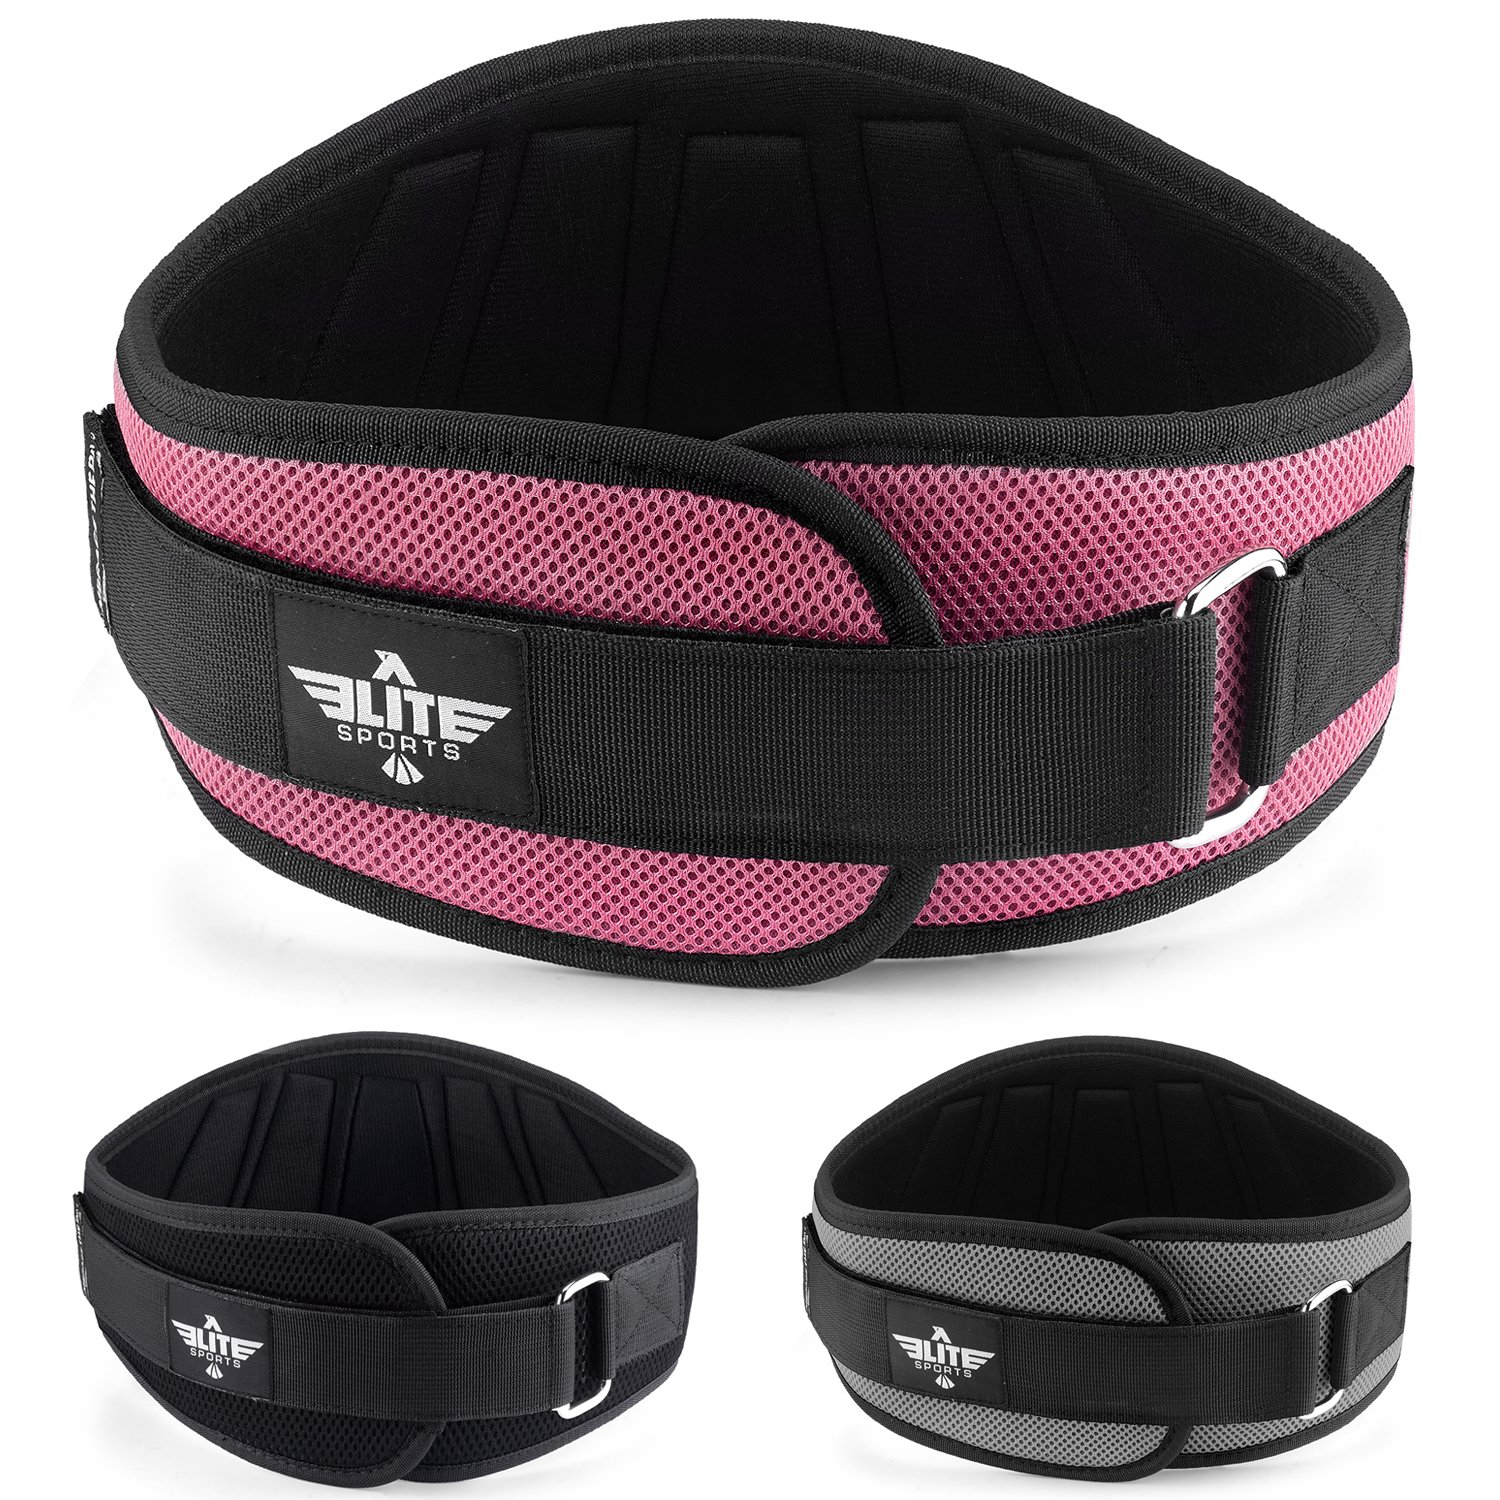 Elite Sports New Item Back Support for Men and Women, Olympic Lifting, and Weight Lifting Belt (Pink, X-Small)